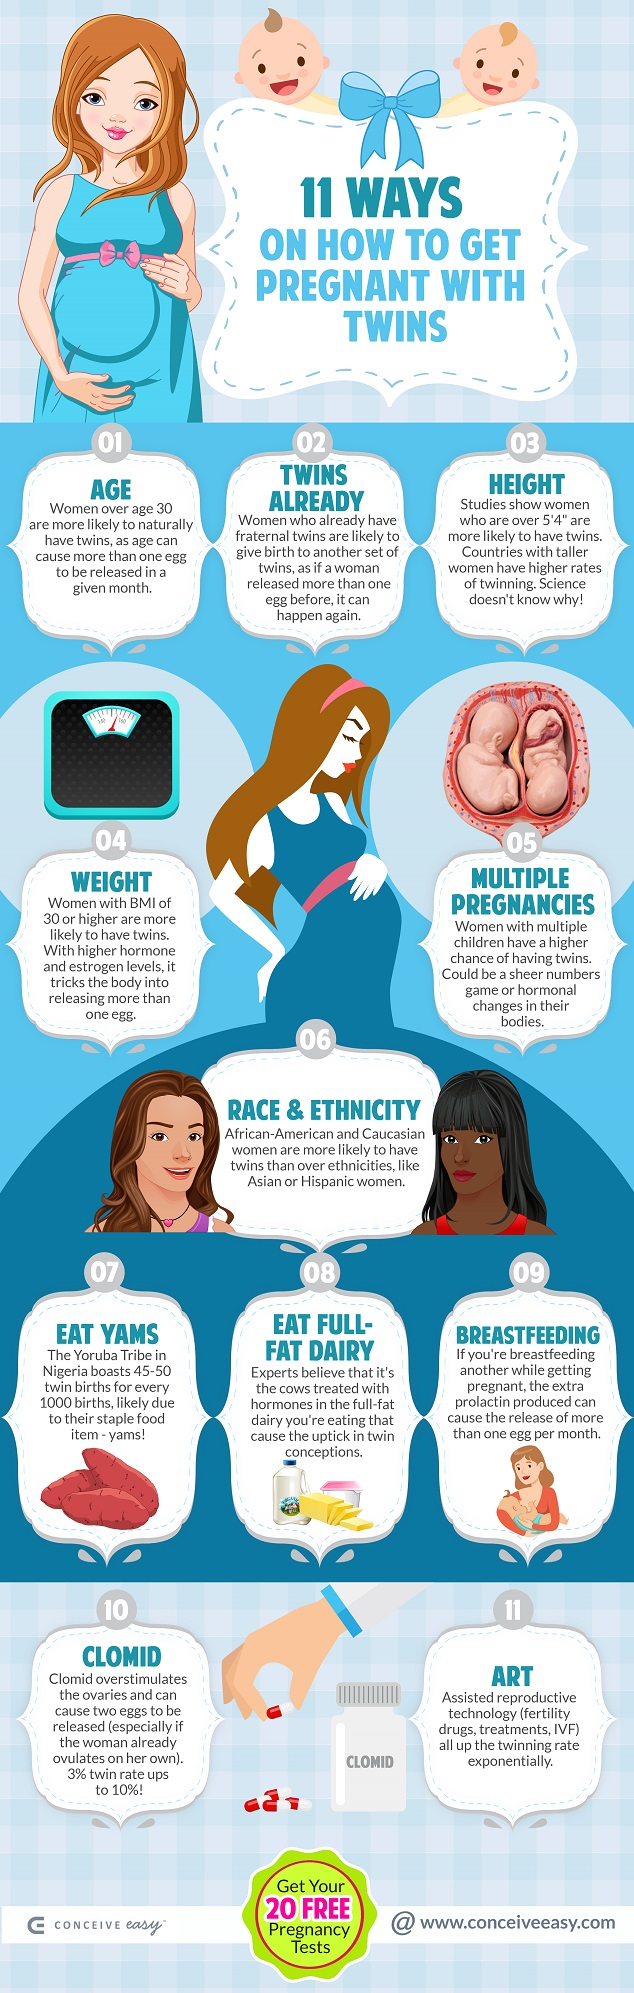 11 Ways to Get Pregnant with Twins Infographic